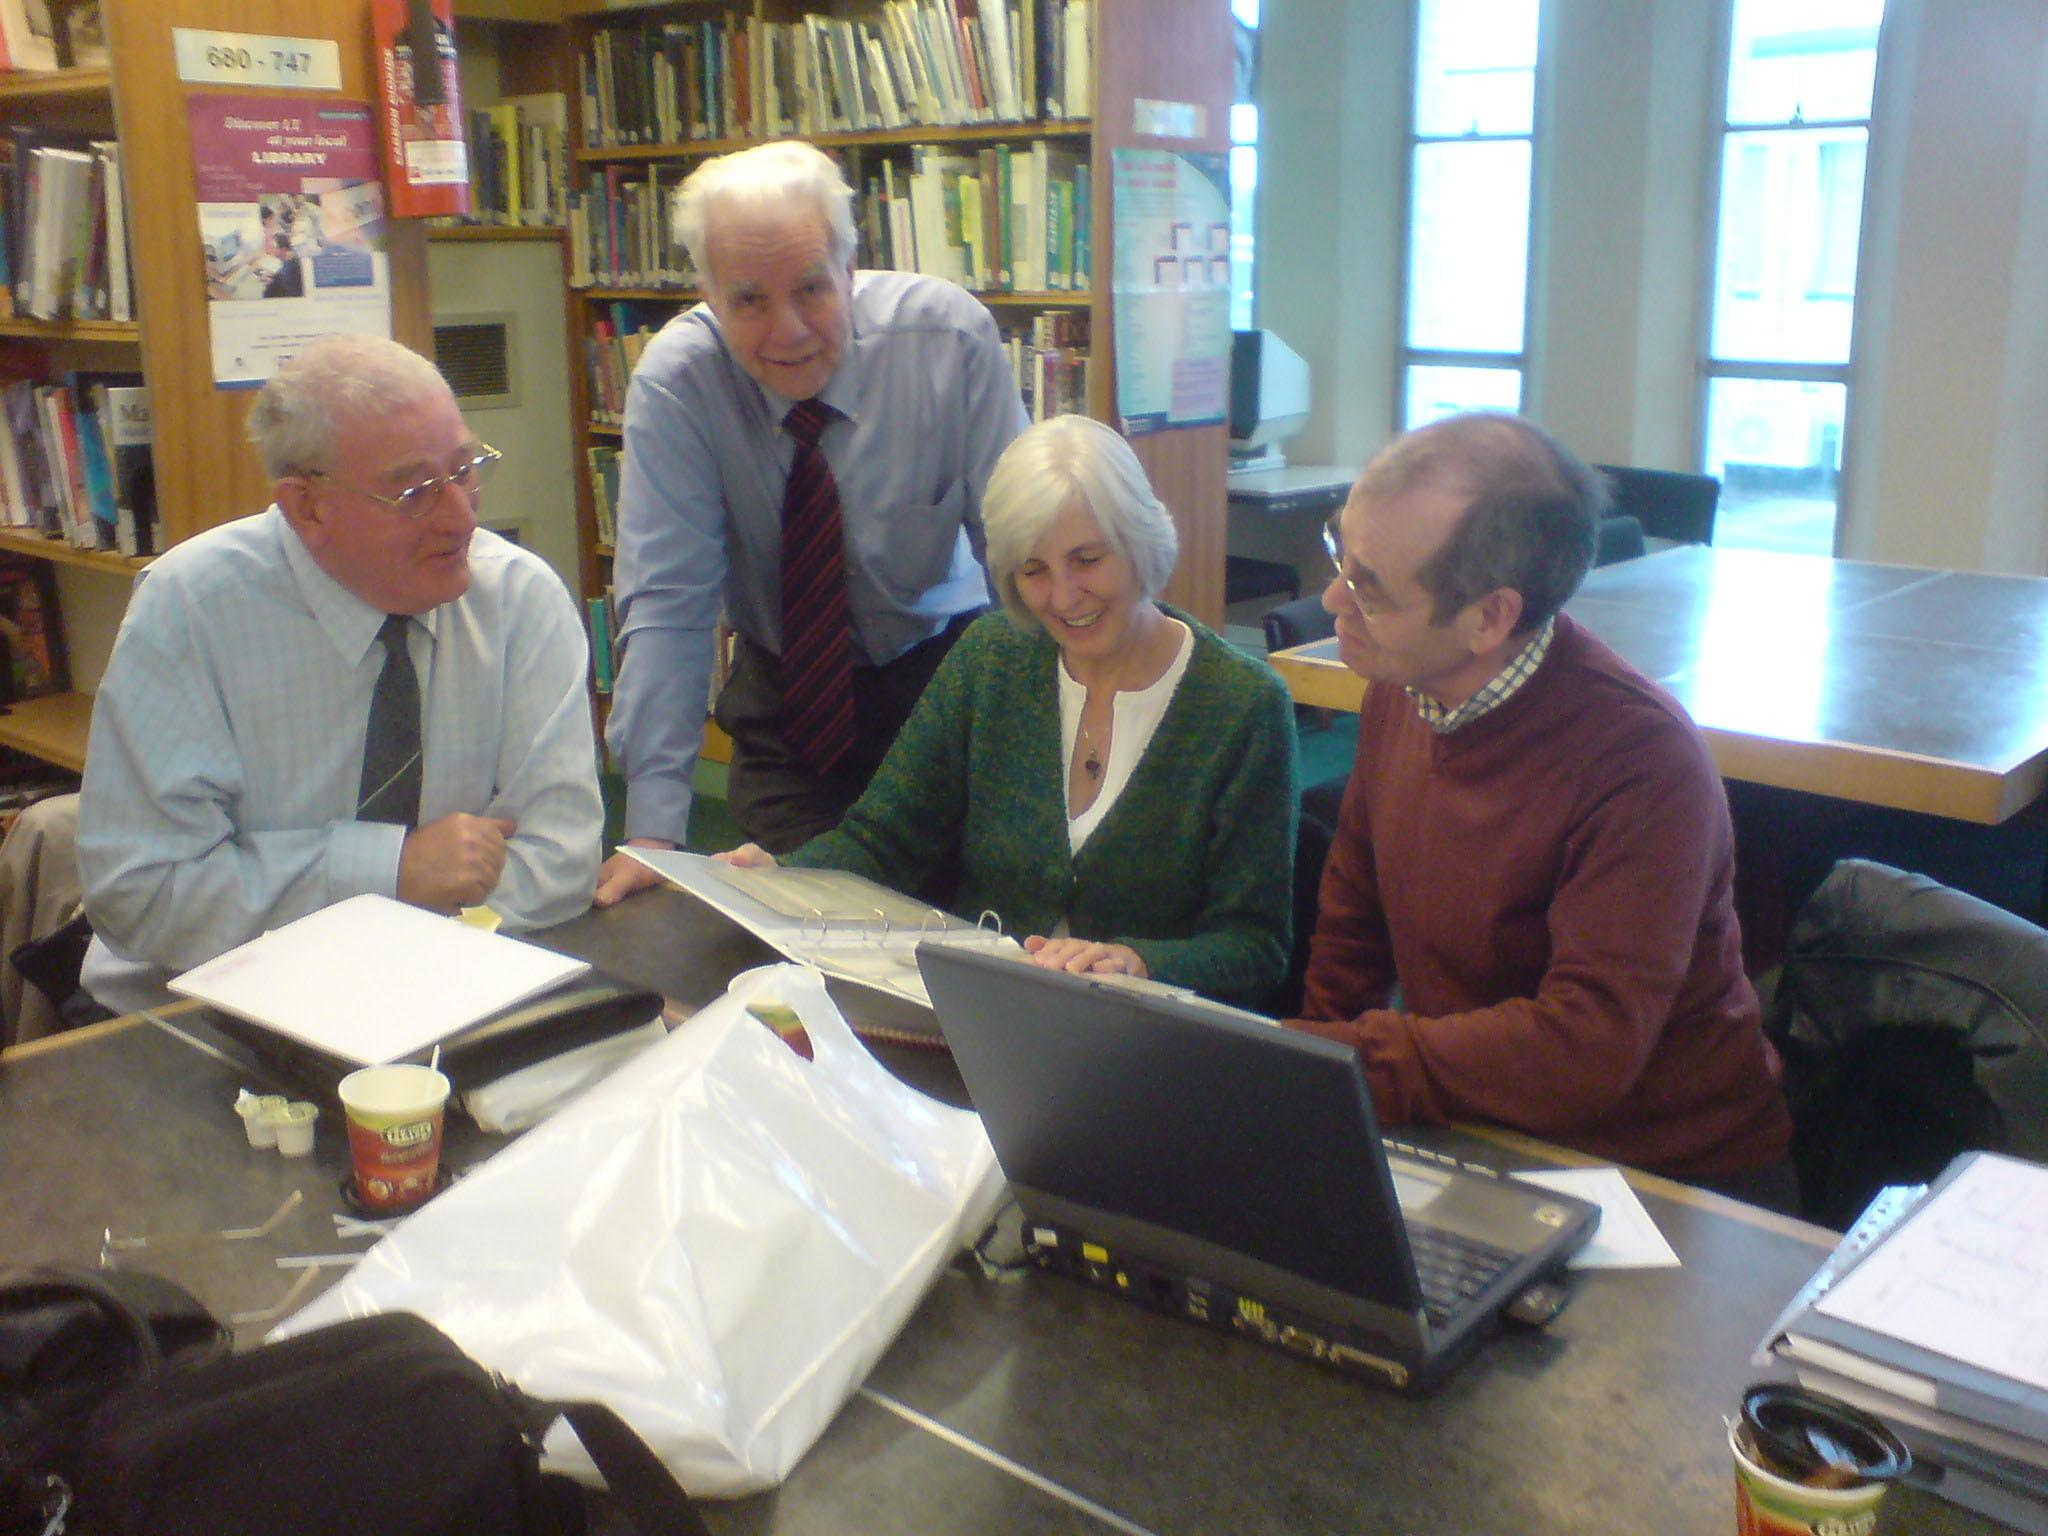 George Highton, June Pennell, Alan Ingram & Bob Wright, among others, can help with your research.